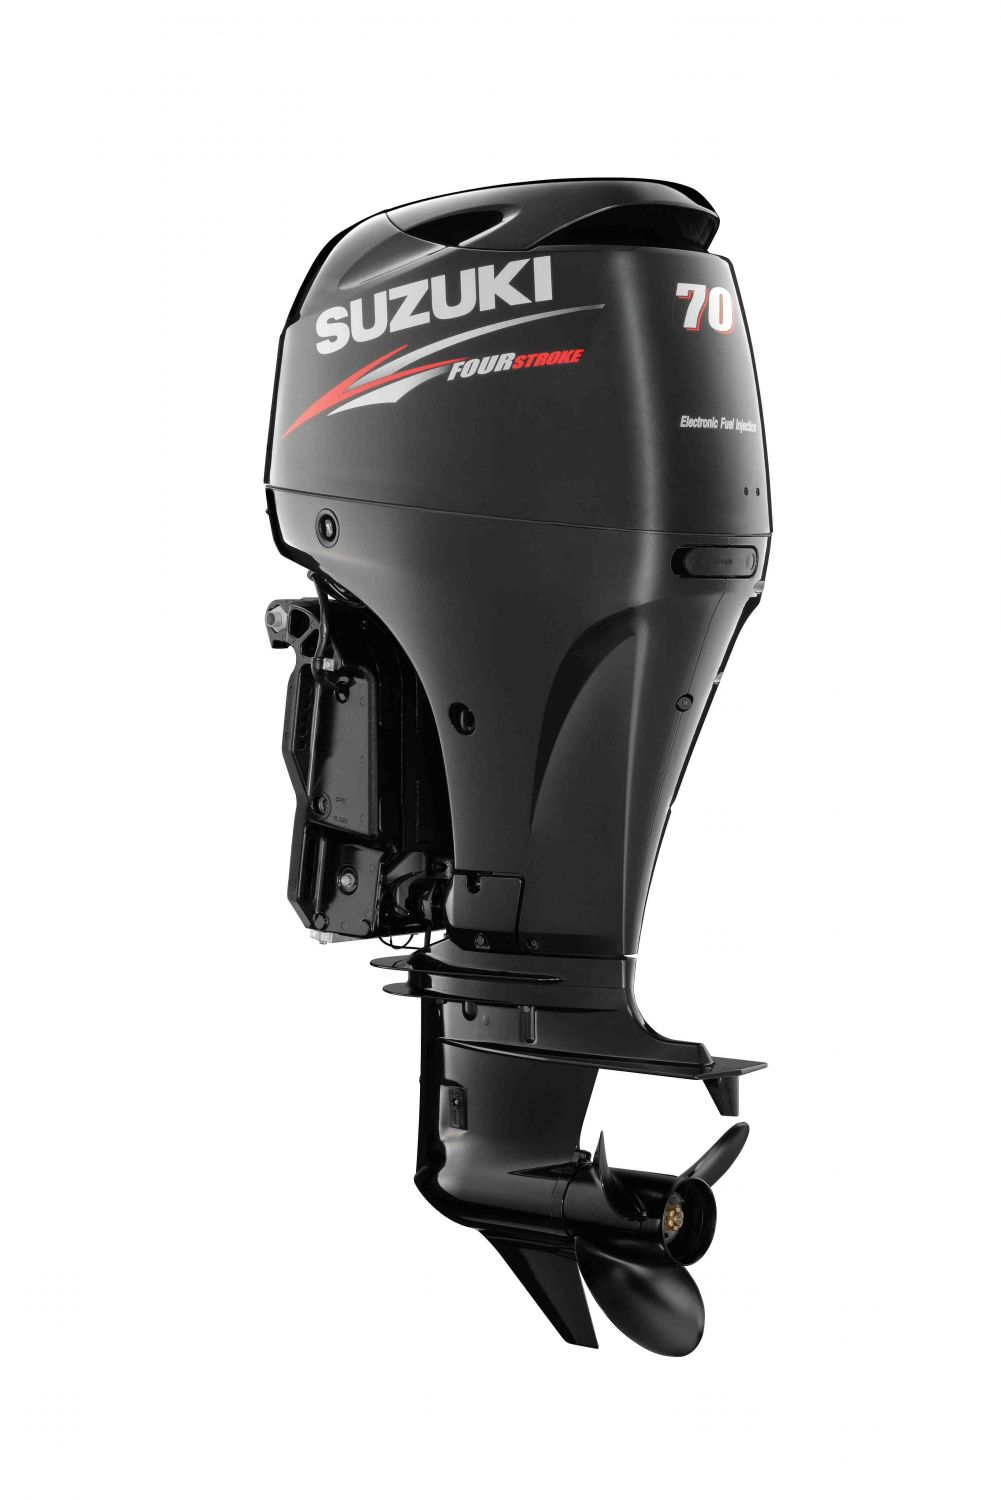 Suzuki DF70A four stroke marine outboard engine